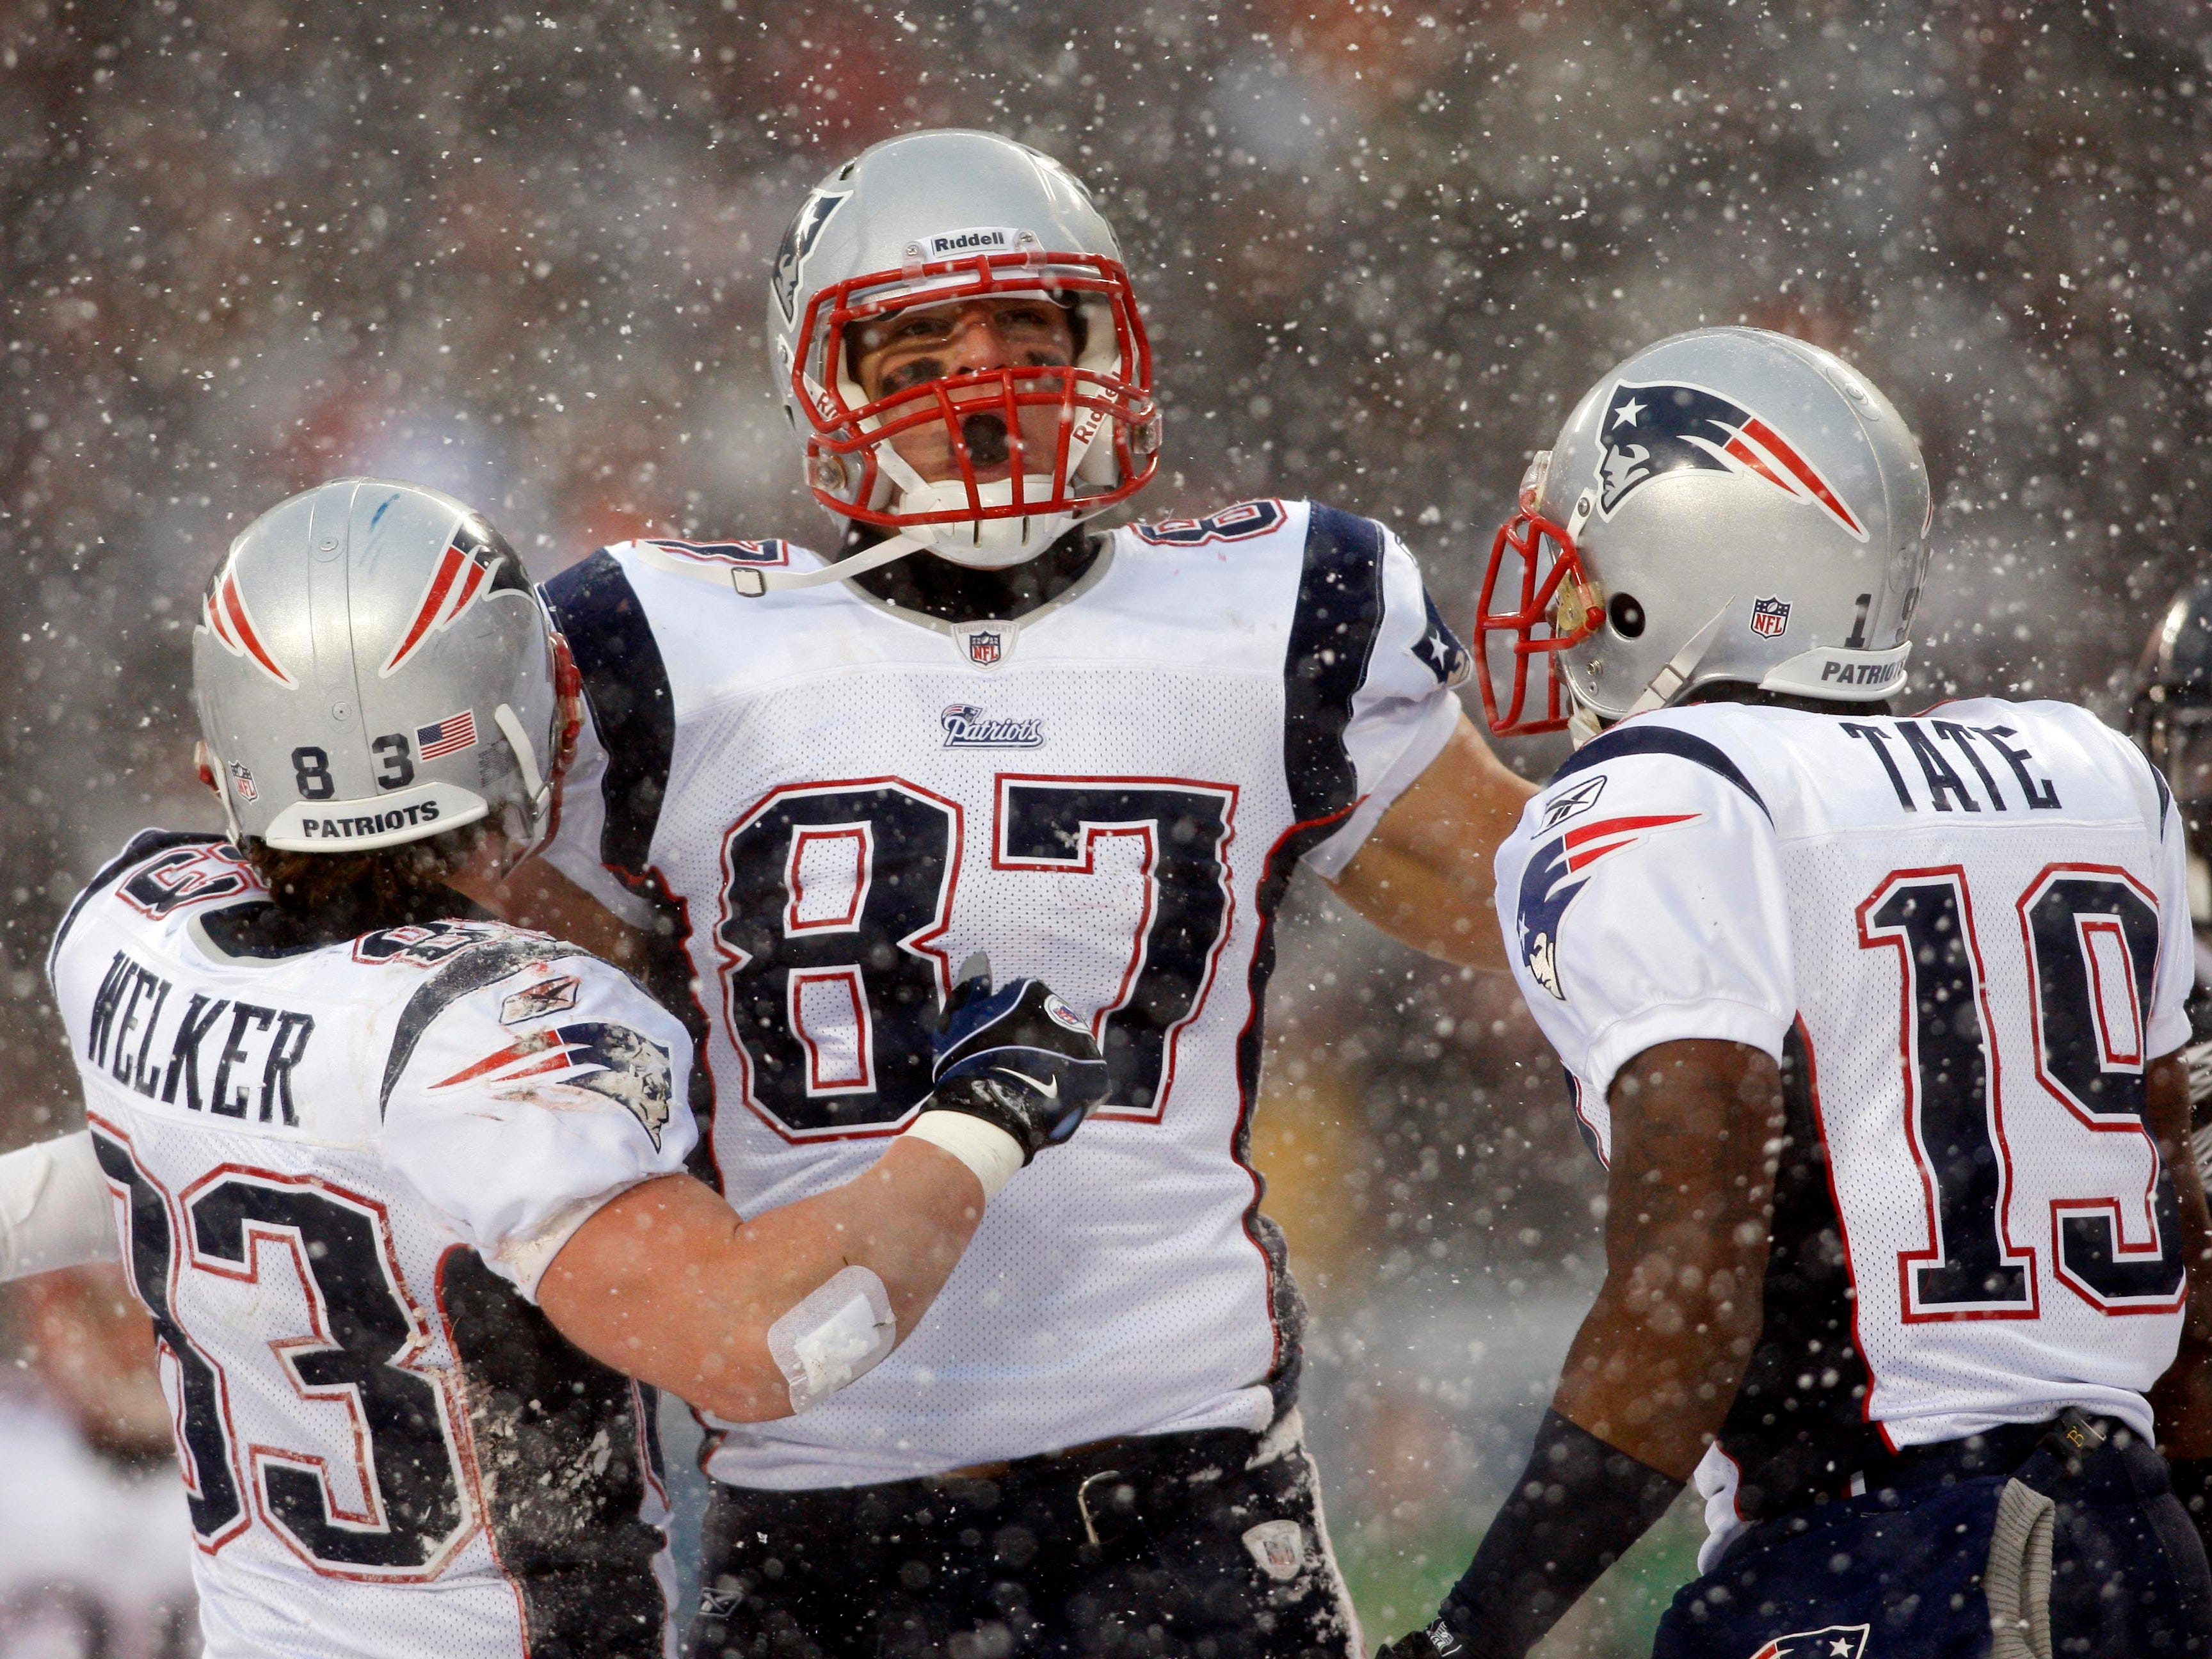 Dec. 12, 2010: Rob Gronkowski celebrates with teammates Wes Welker (83) and Brandon Tate (19) after scoring a touchdown against the Chicago Bears at Soldier Field.